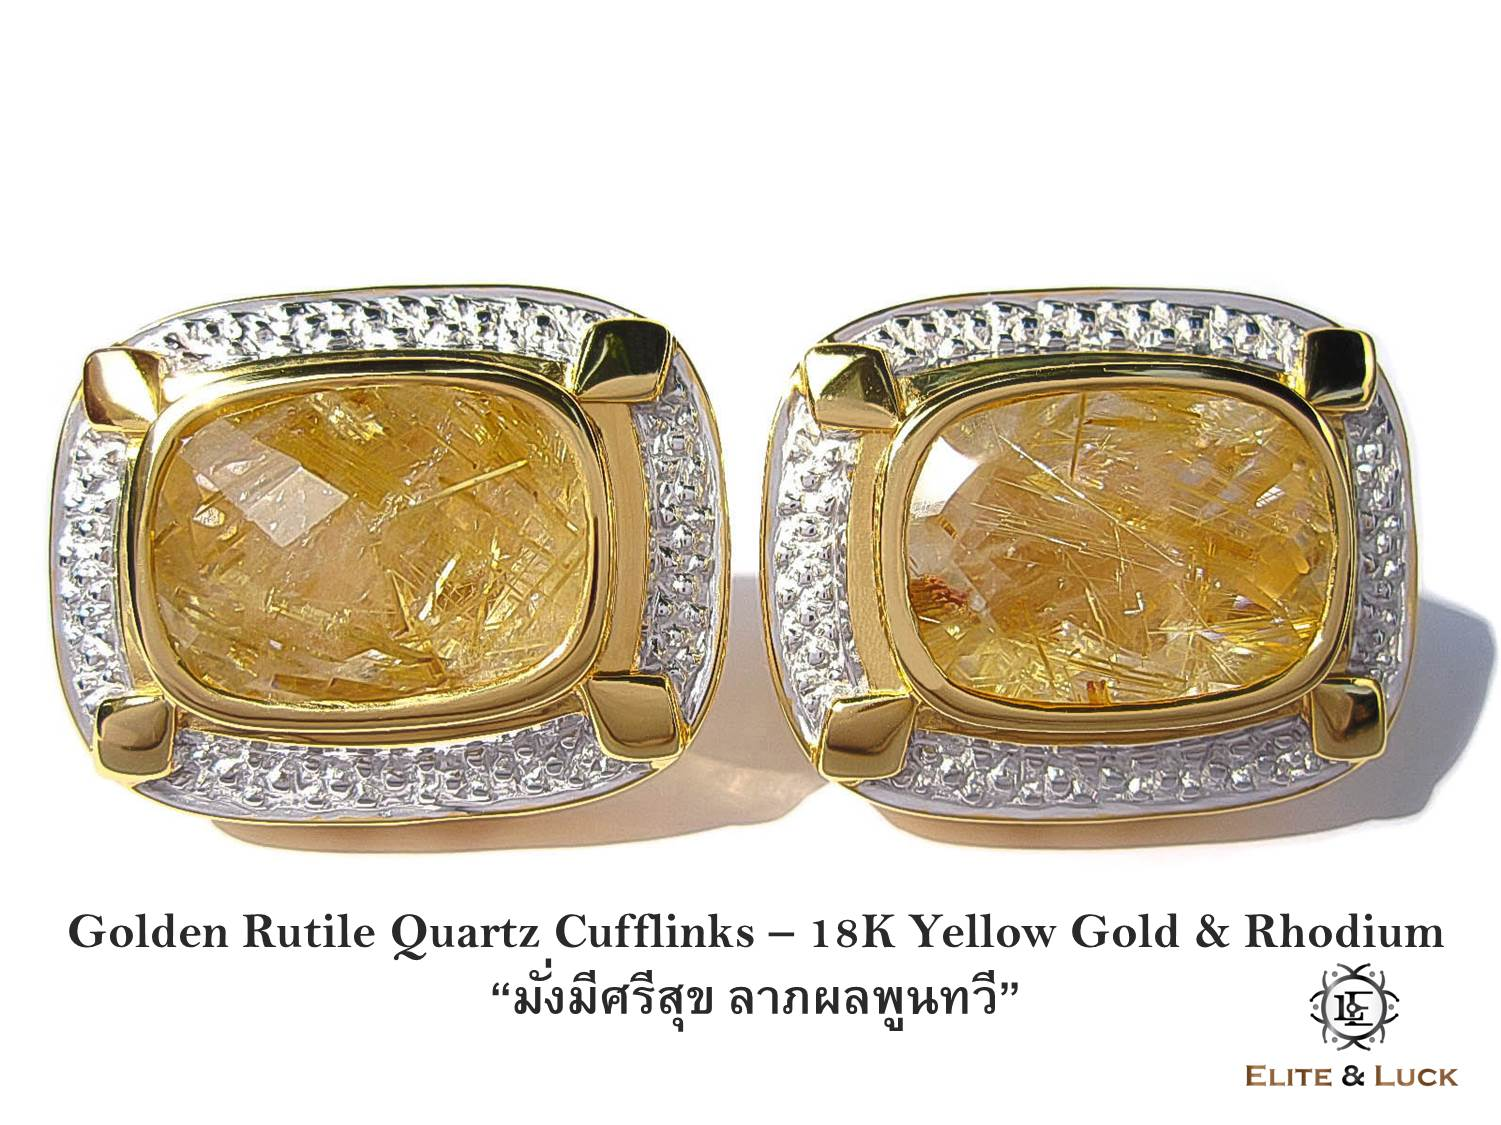 "Golden Rutile Quartz Sterling Silver Cufflinks ""Royal Quality"" สี 18K Yellow Gold & Rhodium รุ่น Luxury"